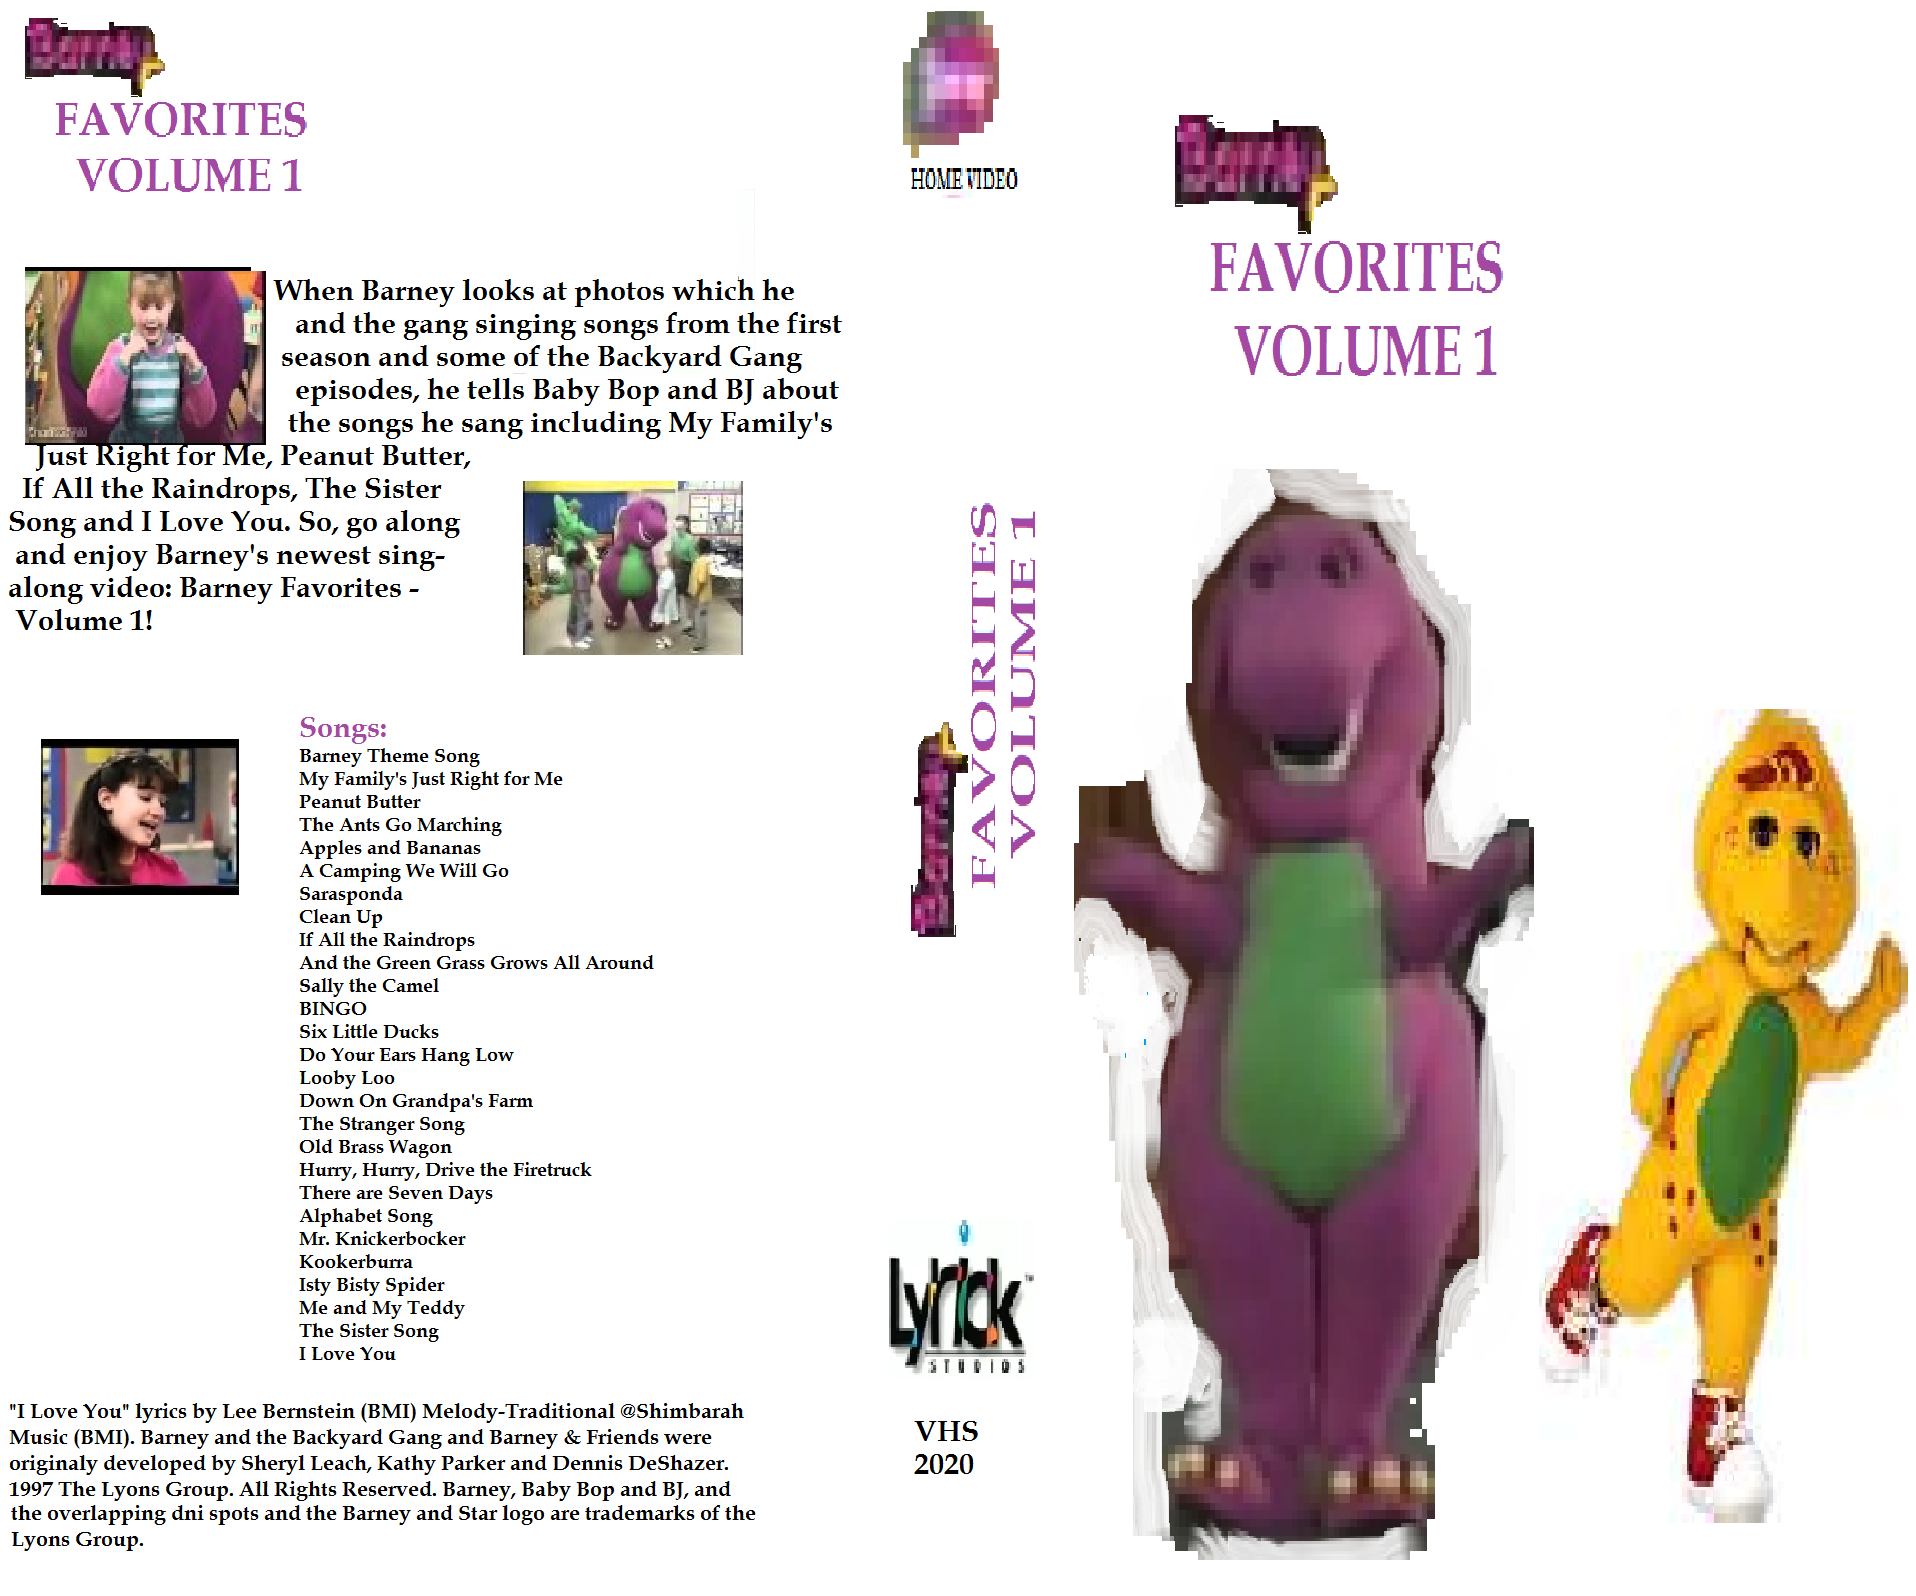 barney favorites volume 1 scratchpad fandom powered by wikia